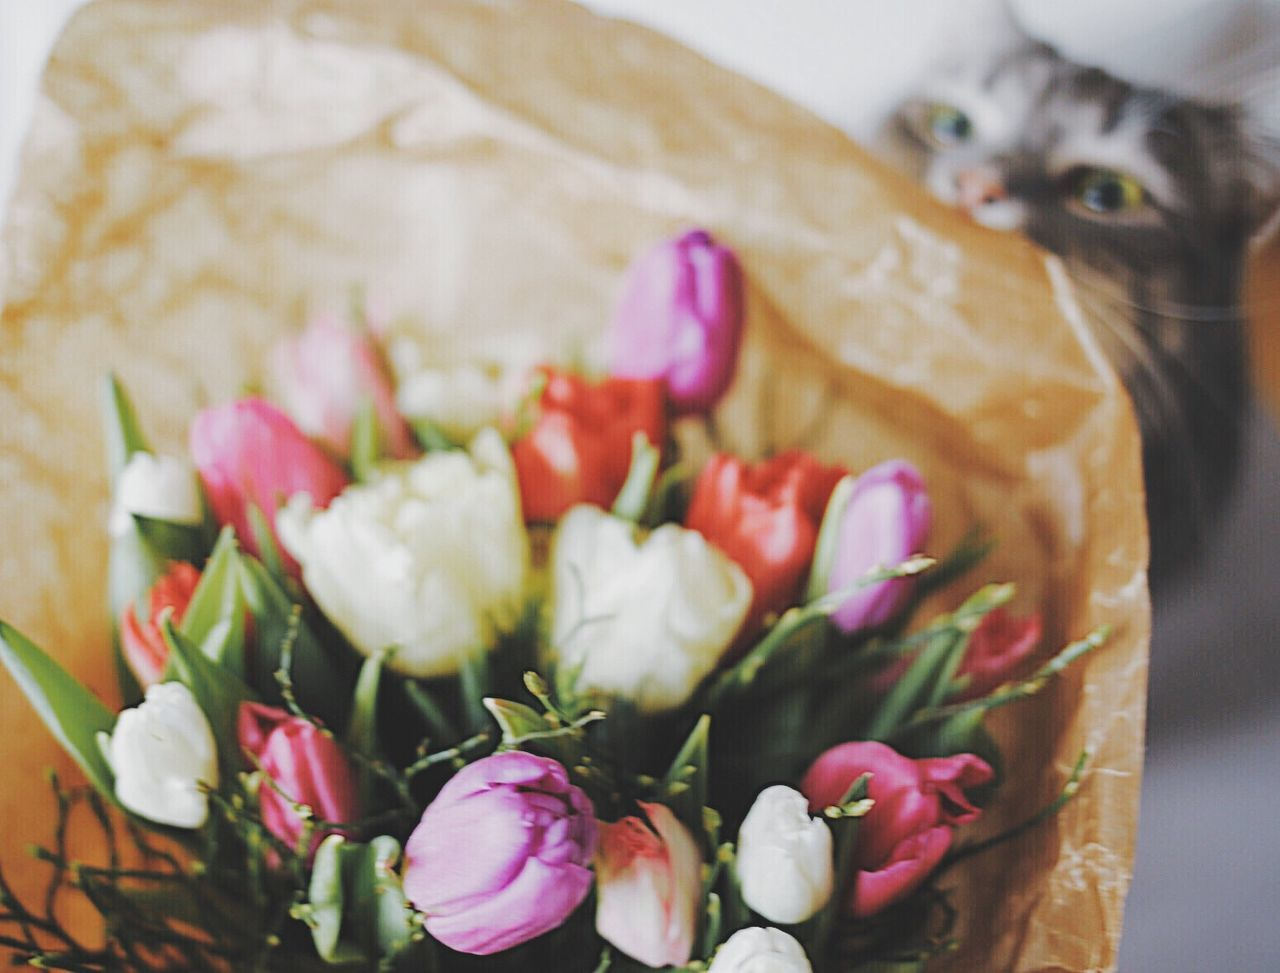 Flower No People Freshness Fragility Nature One Animal Close-up Pets Indoors  Animal Themes Mammal Domestic Animals Beauty In Nature Flower Head Day Funny Faces Funny Face Flower Collection Flower Arrangement Cute Cats Bouquet Tulip Multi Colored